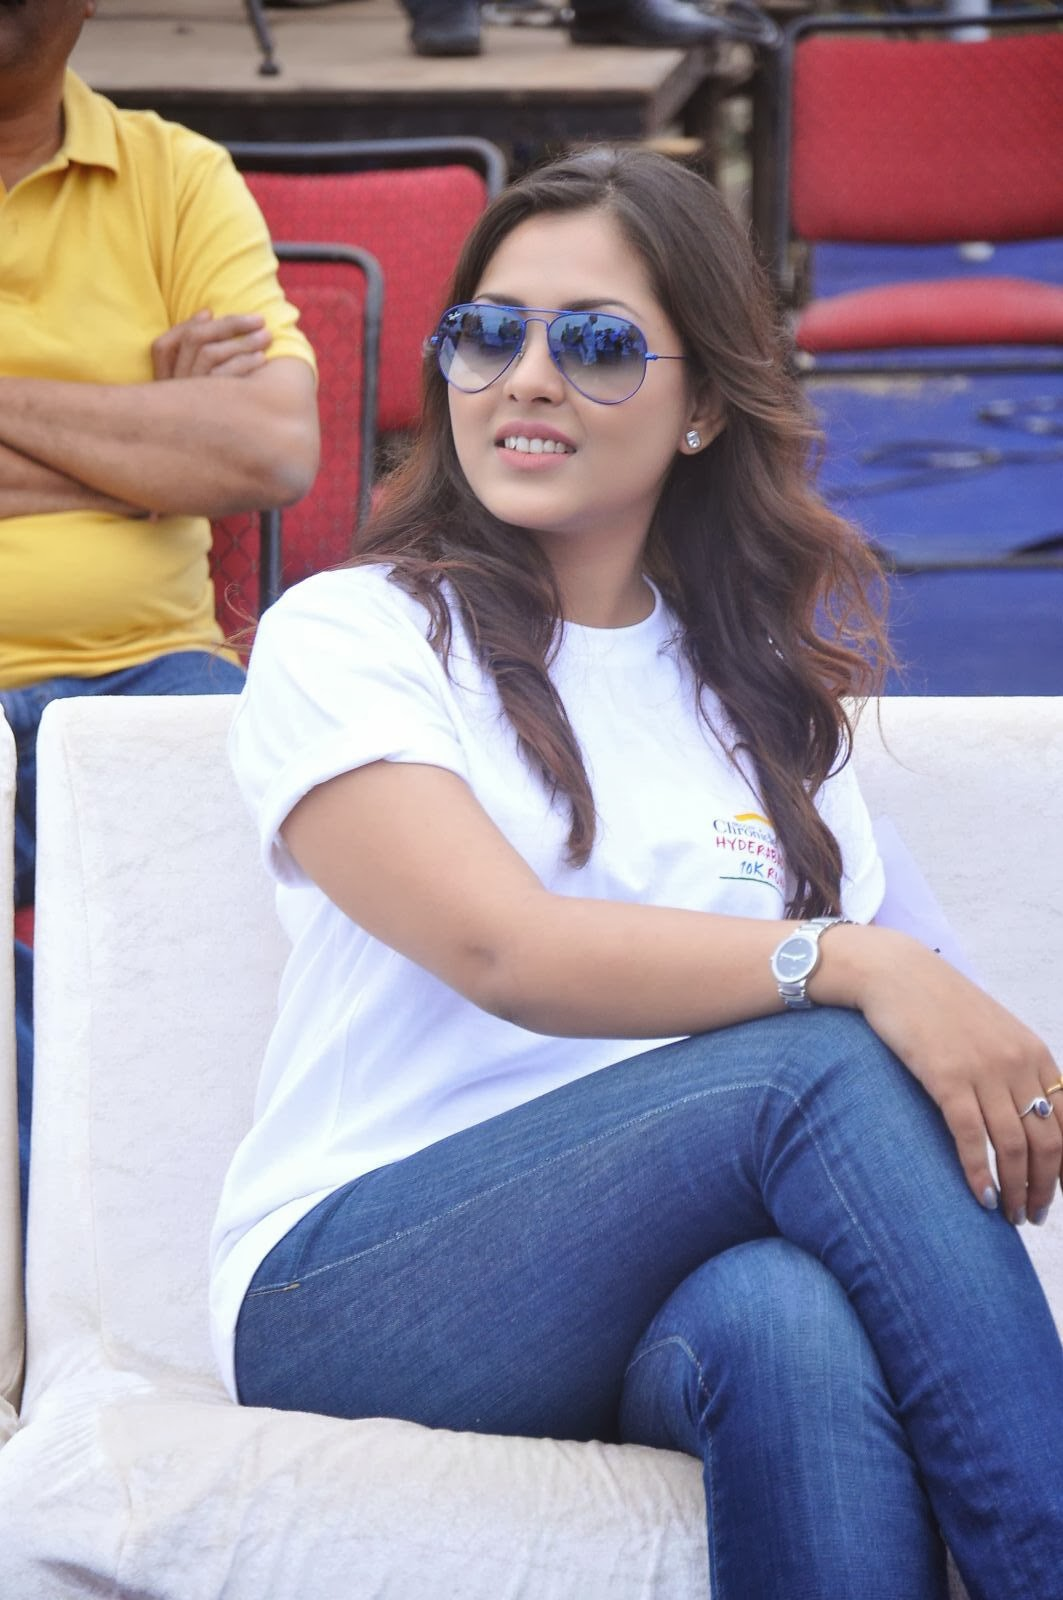 Madhu shalini latest photo gallery in jeans at hyderabad 10k run